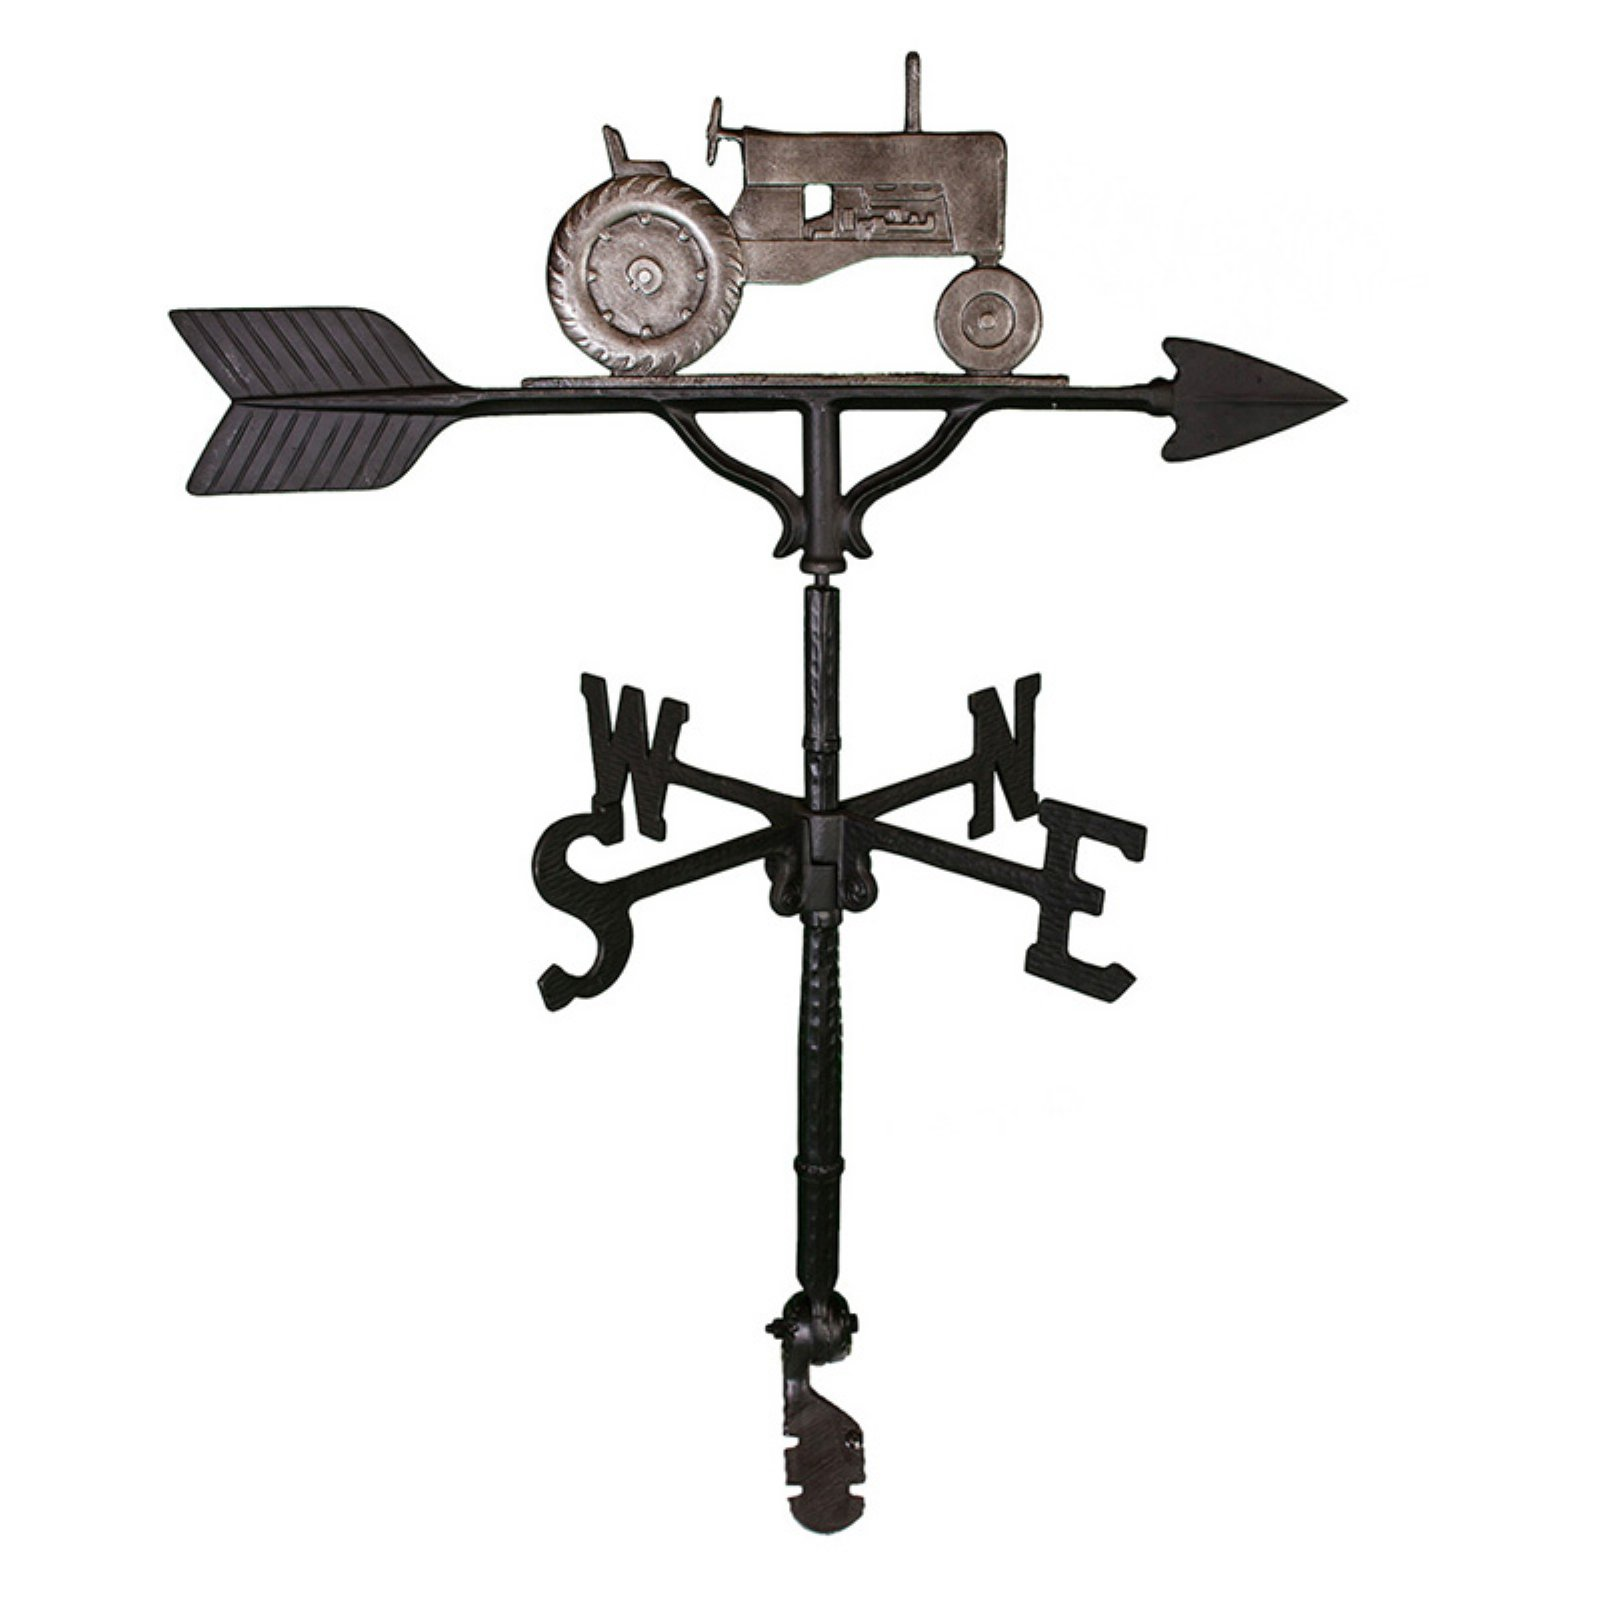 Swedish Iron Tractor Weathervane 32 in. by Montague Metal Products